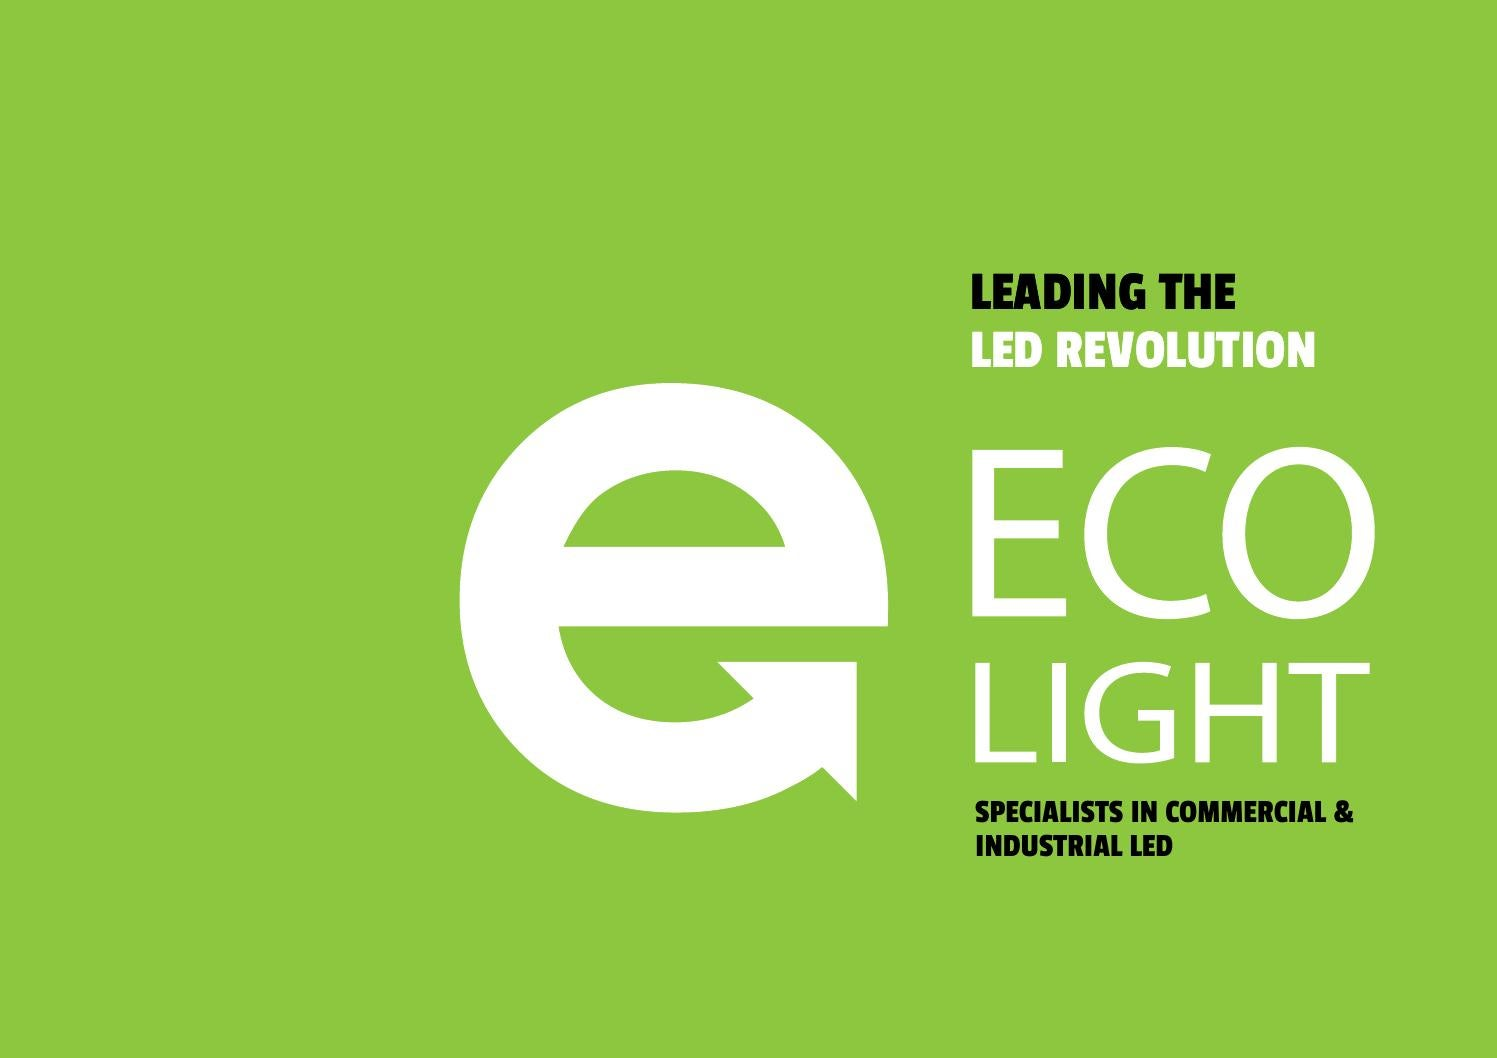 Ecolight Led Lighting Solutions By Smp Issuu Use A Relay Or Smart Switch With The 45 Watt Higher Halogen Lights